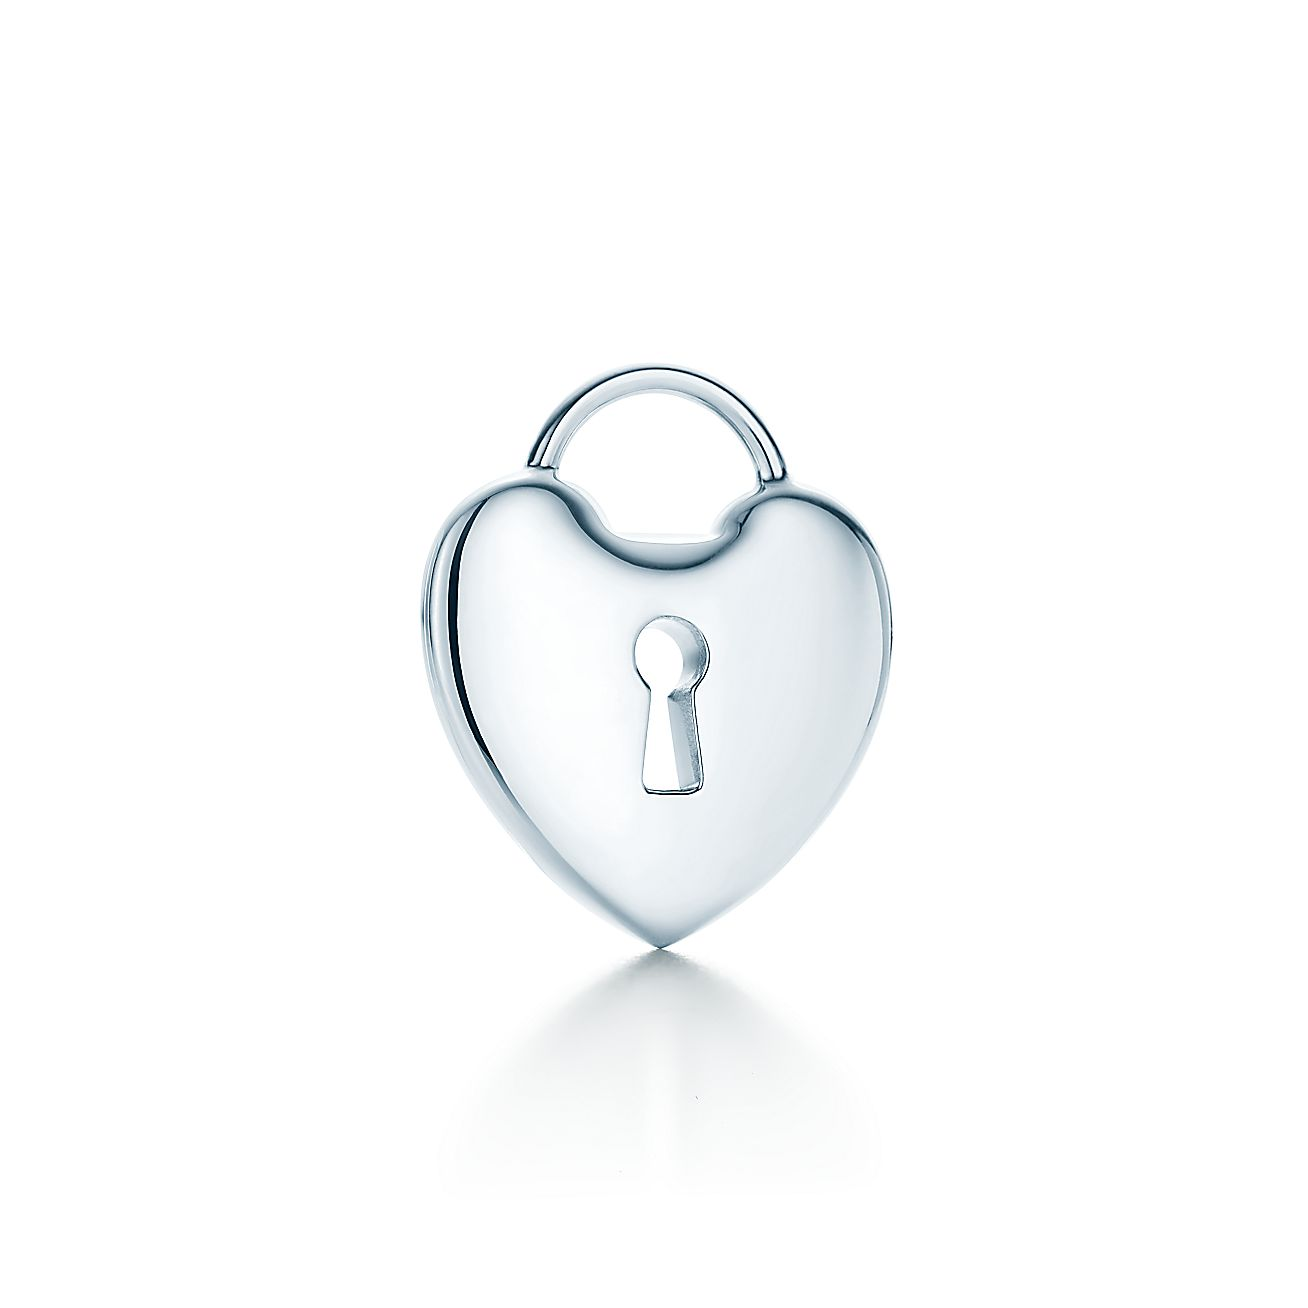 Tiffany Locks:Heart Lock